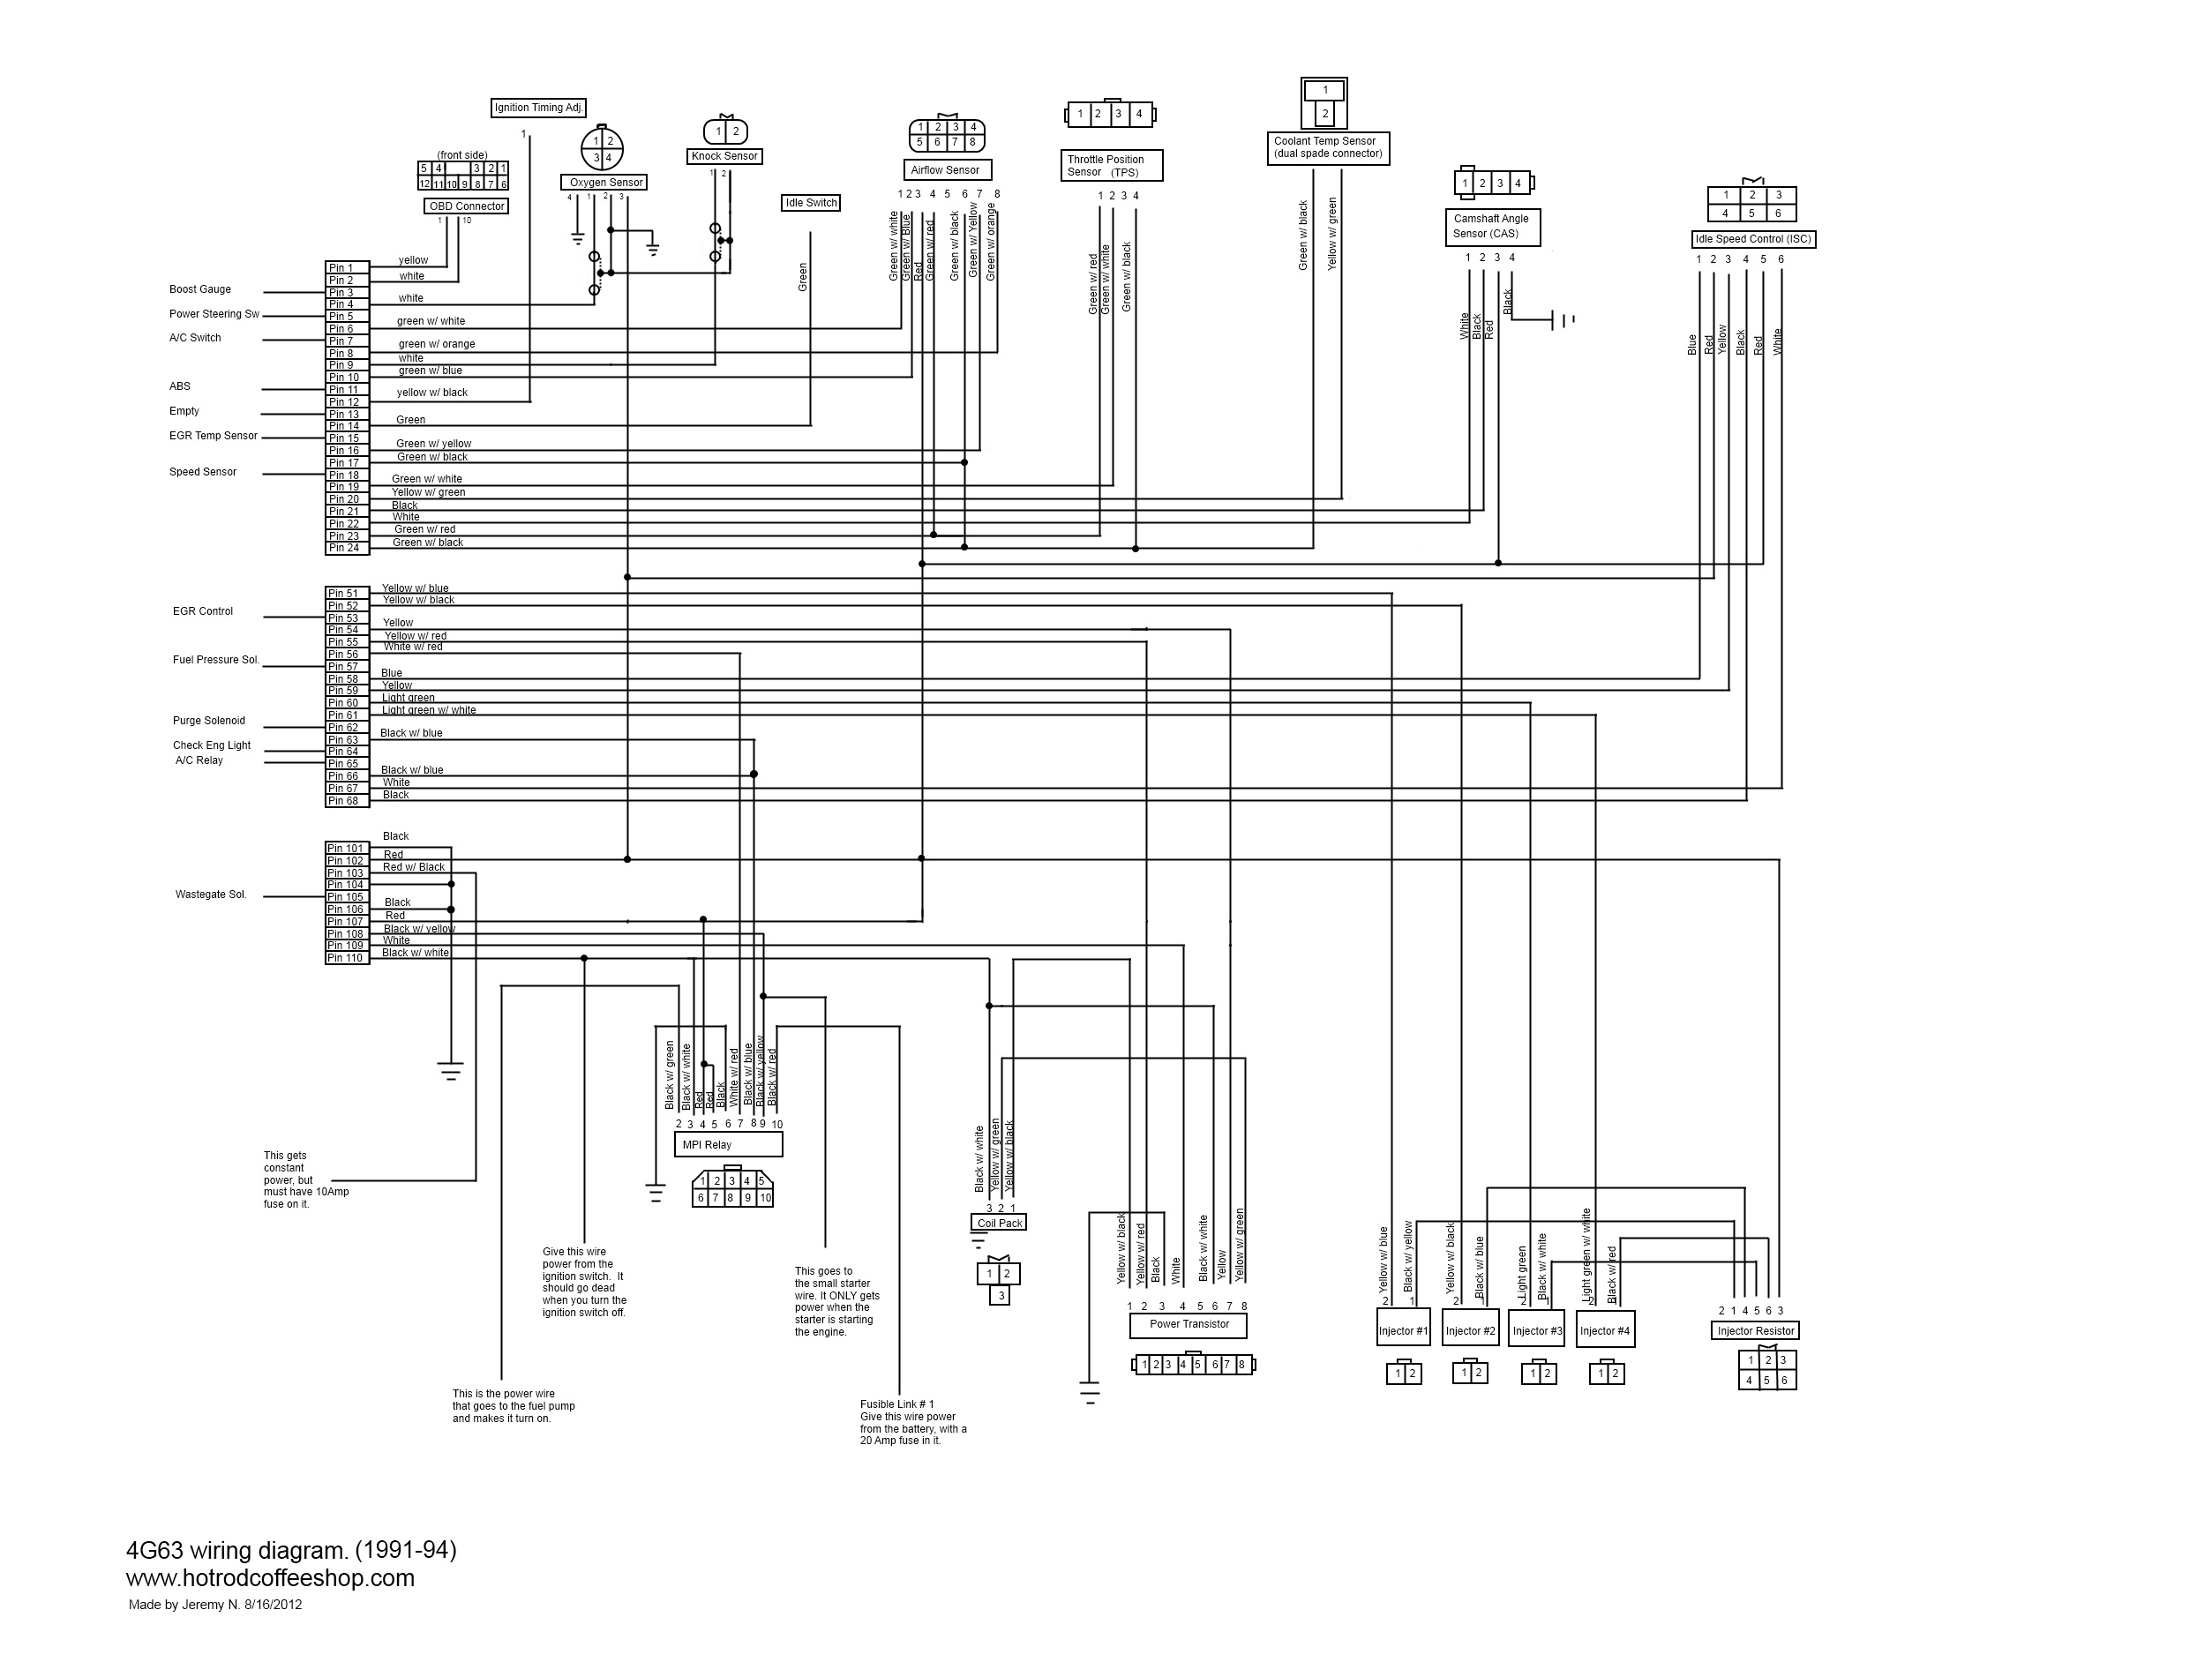 hotrodcoffeeshop com • view topic the official 4g63 wiring wiring diagram schematic that i made image